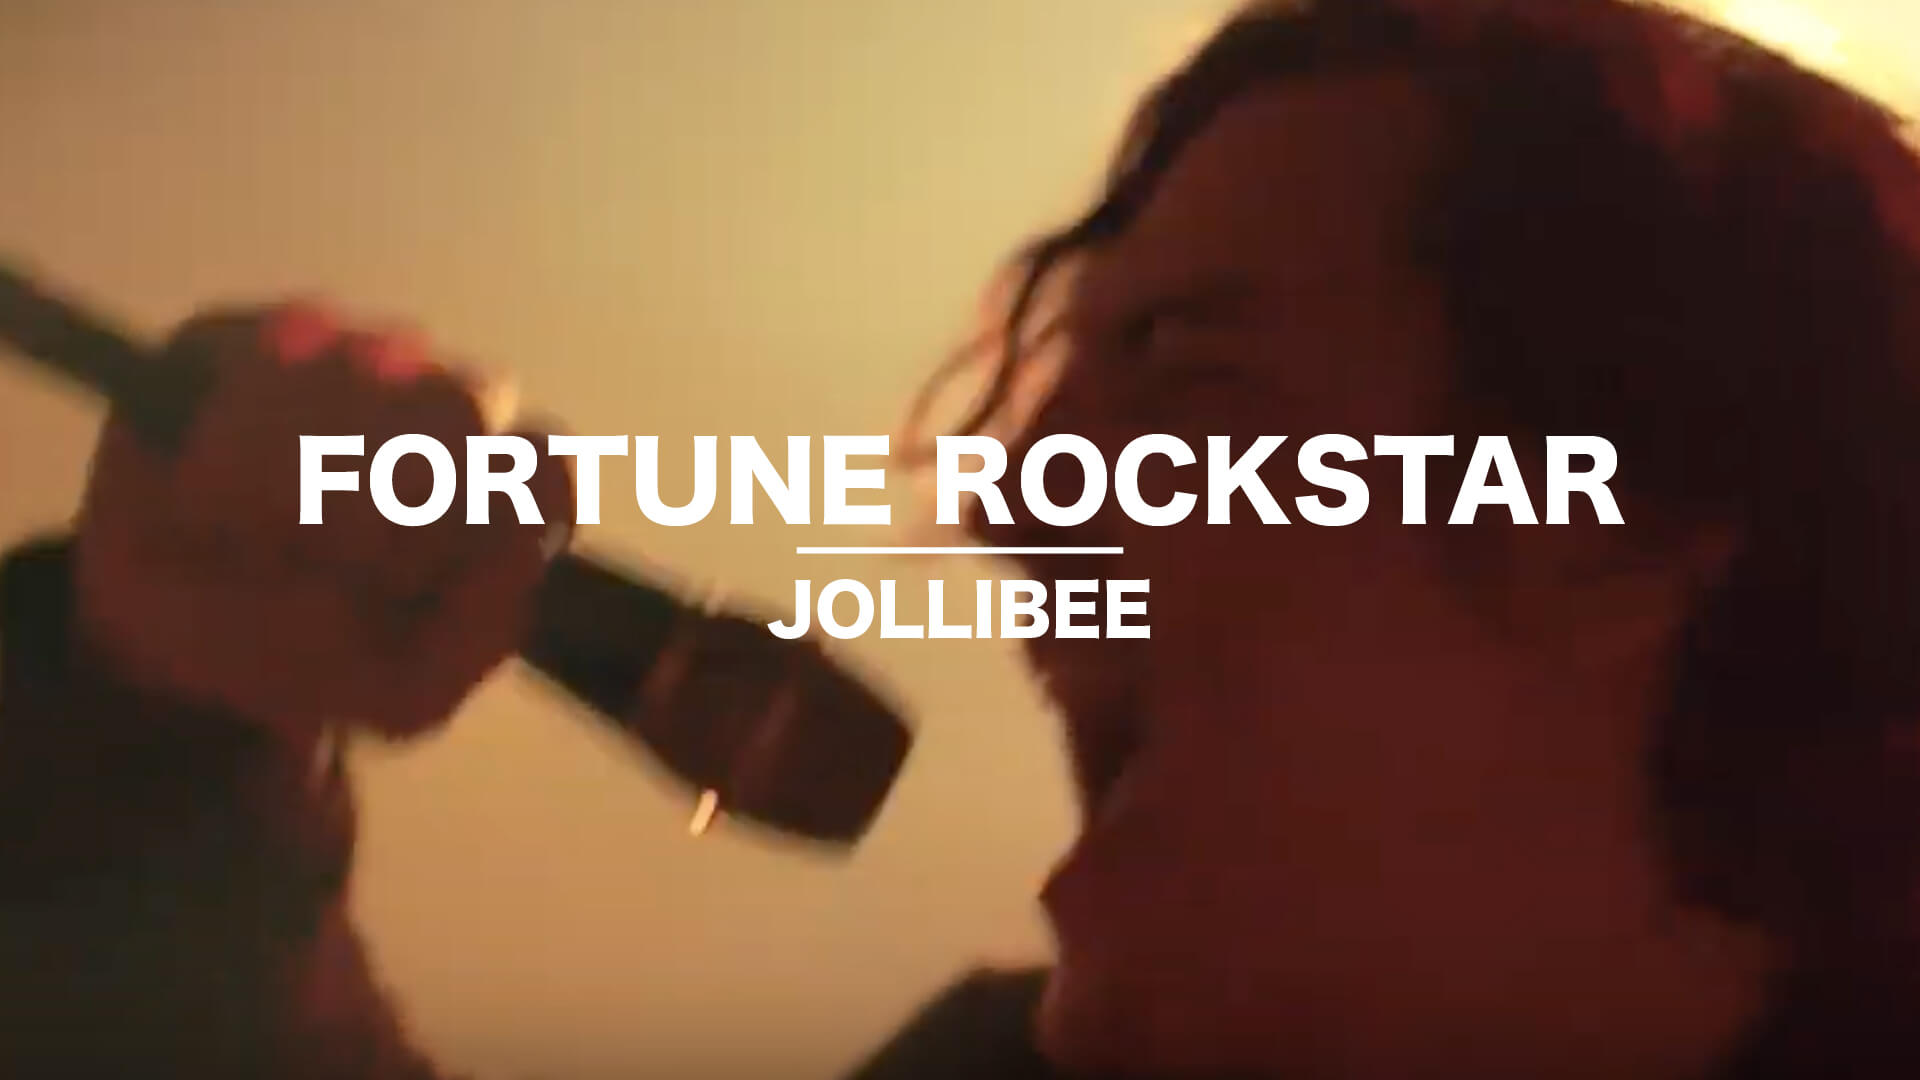 Project Fortune Rockstar Jollibee Digital